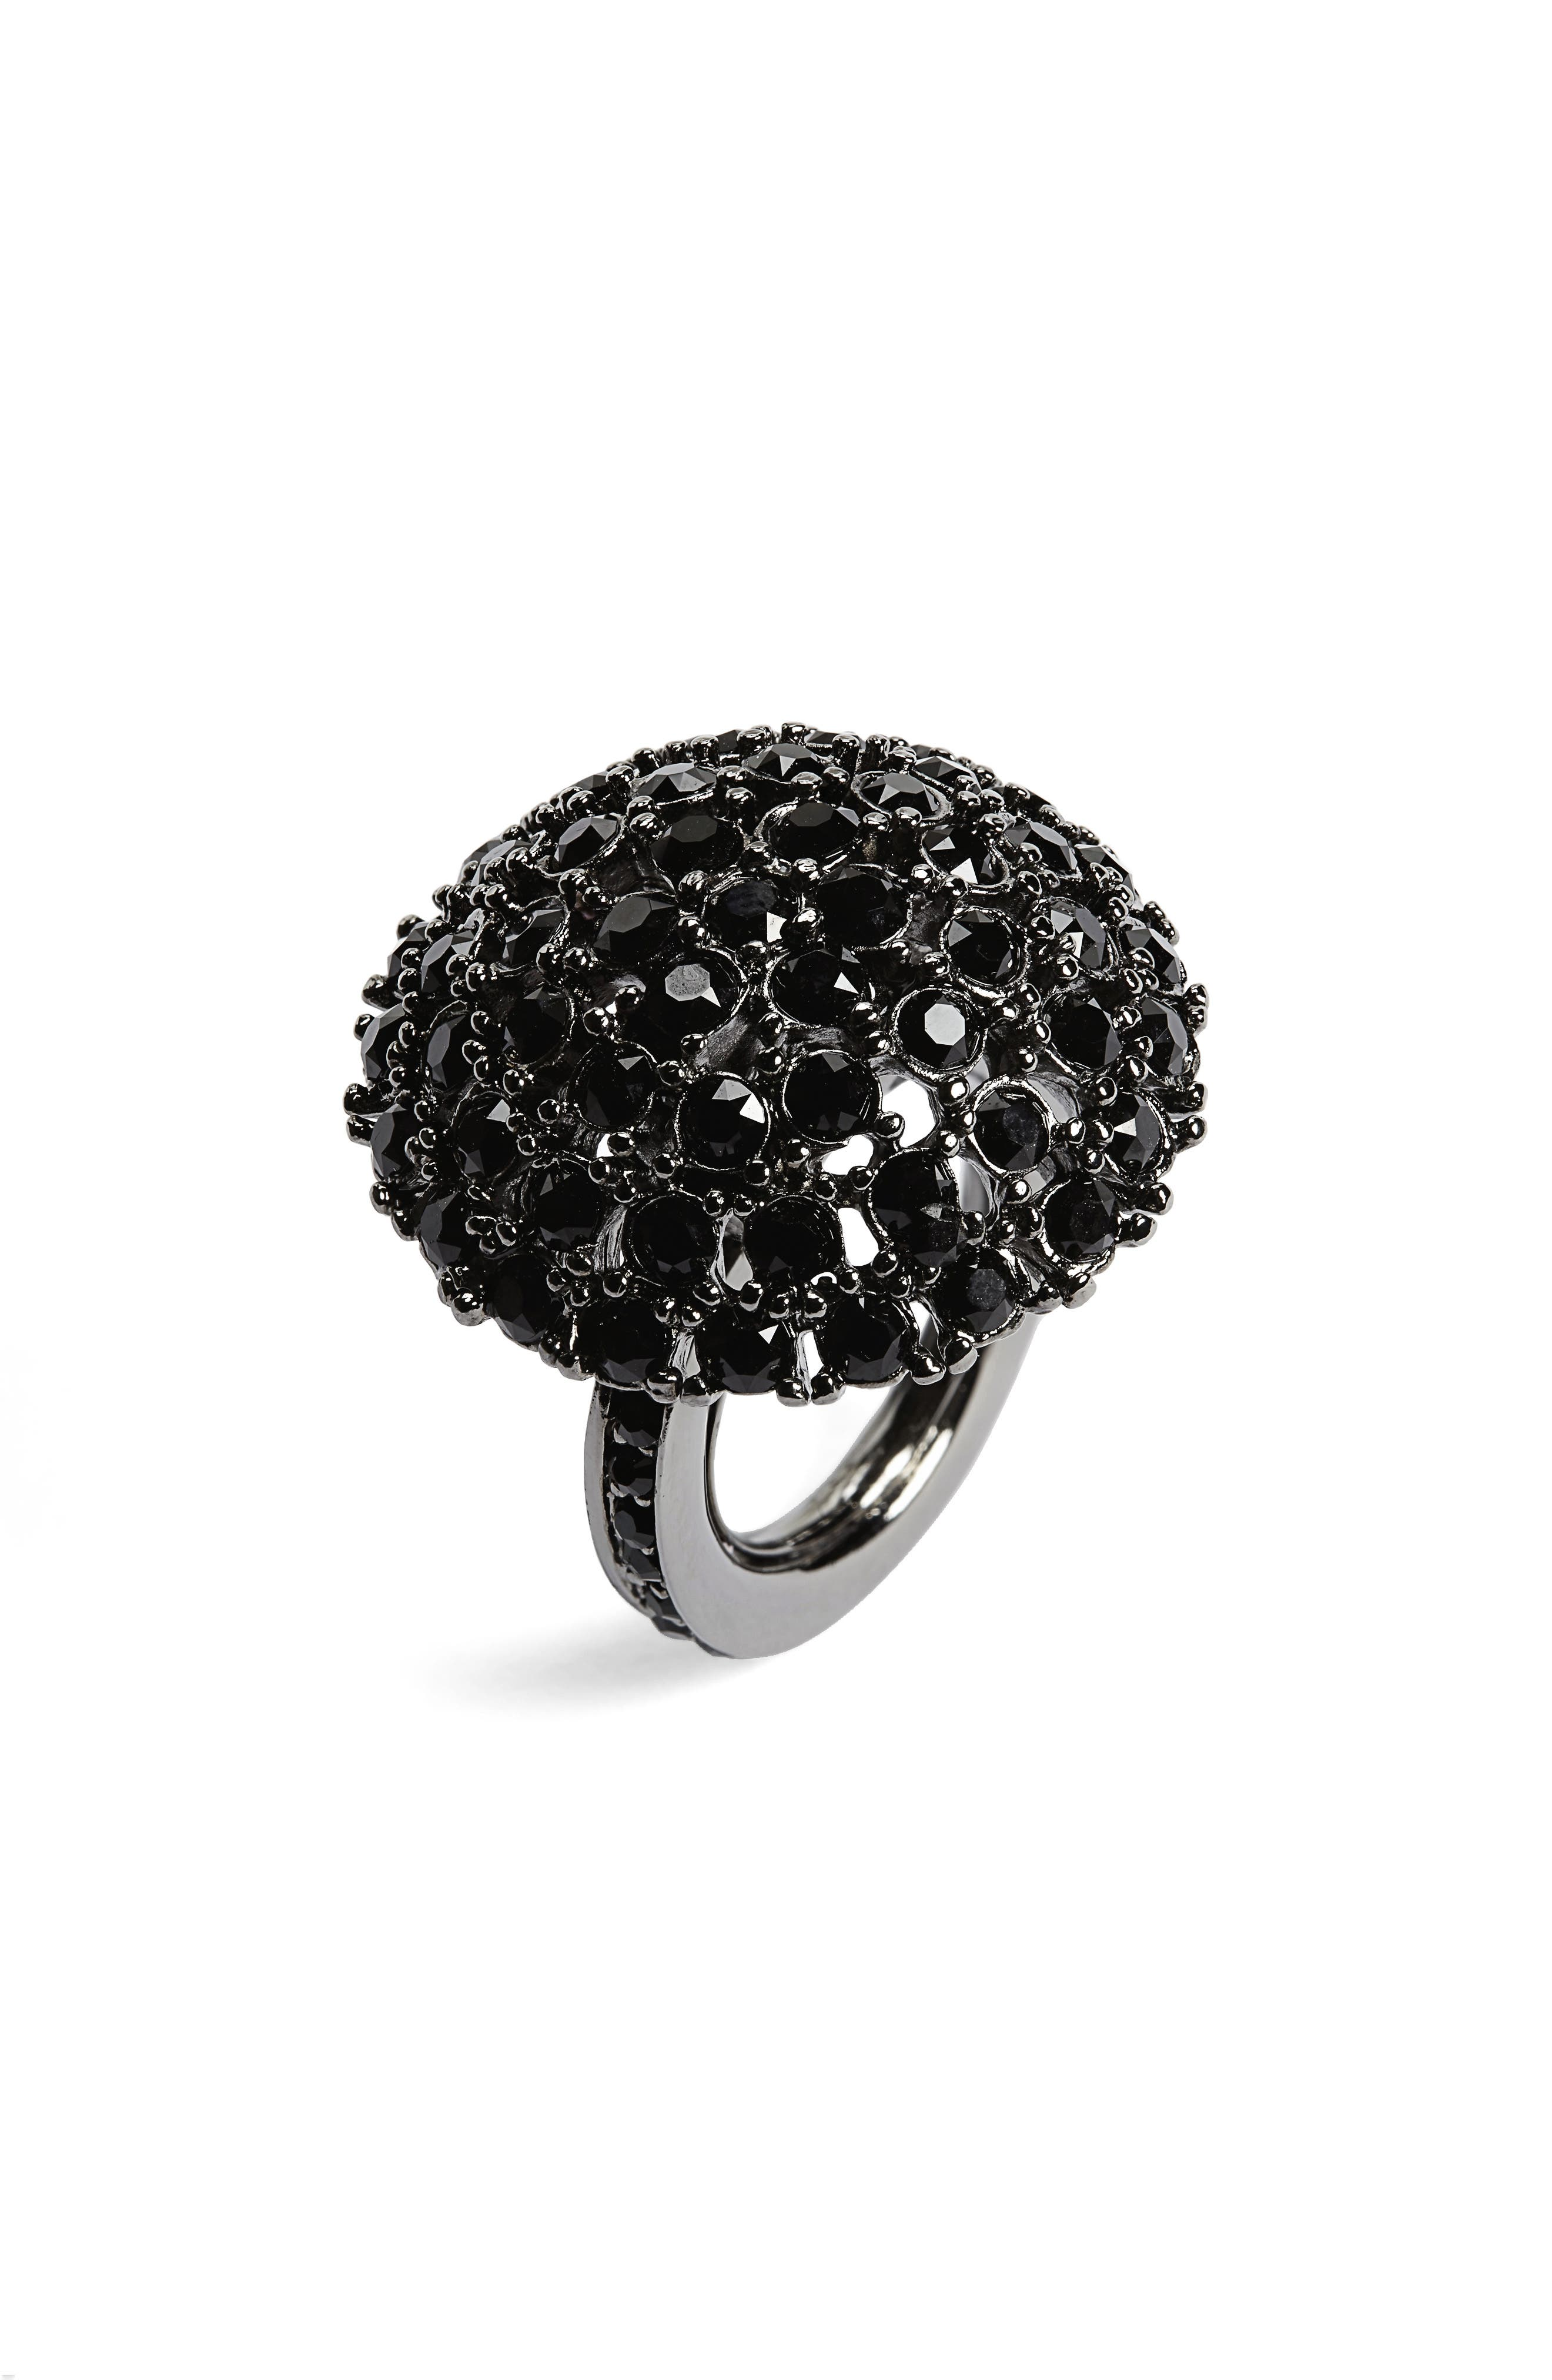 Main Image - Oscar de la Renta Dome Ring